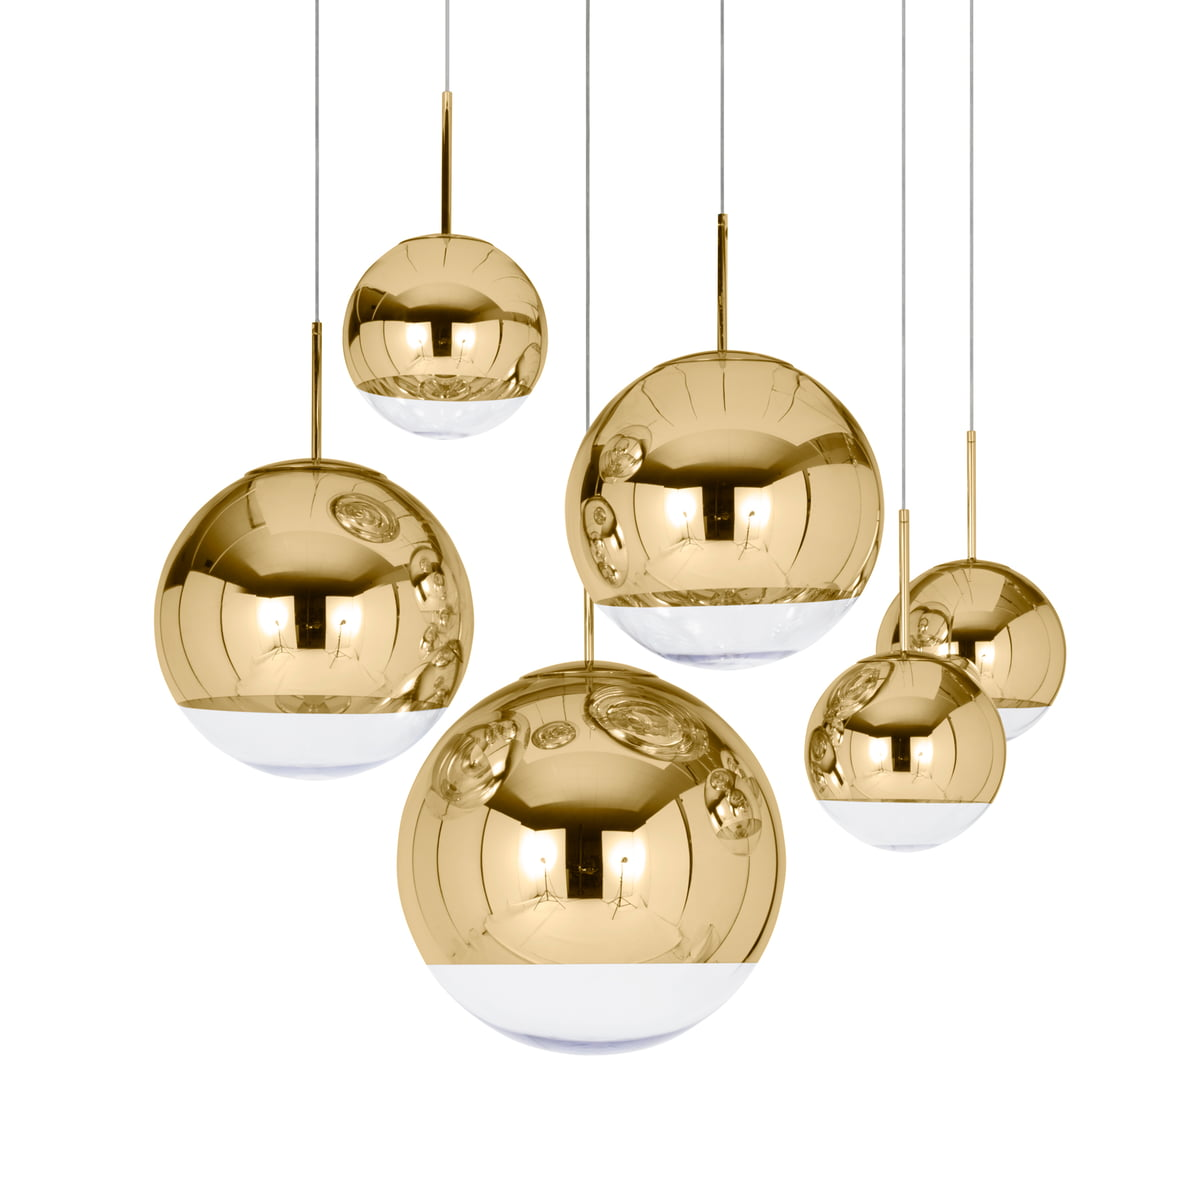 mirror ball gold pendant light by tom dixon. Black Bedroom Furniture Sets. Home Design Ideas